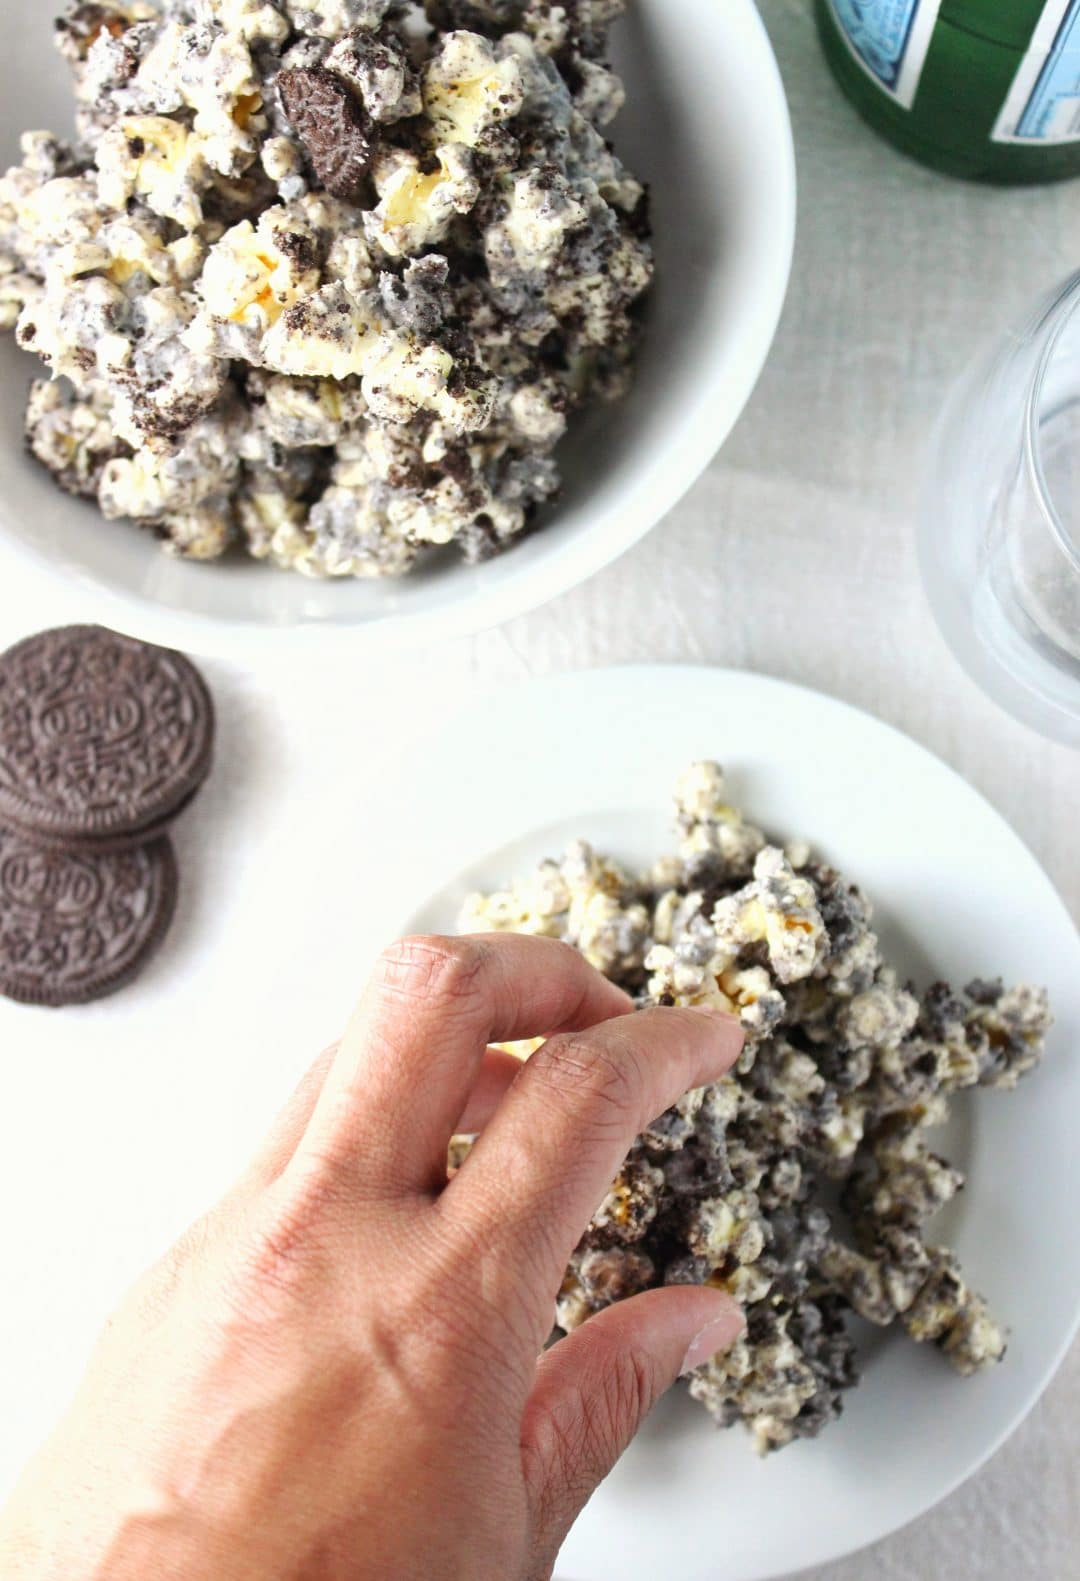 Cookies and Cream Popcorn - Easy 3 ingredient recipe that creates a sweet, salty, and crunchy snack that everyone will enjoy! simplylakita.com #popcorn